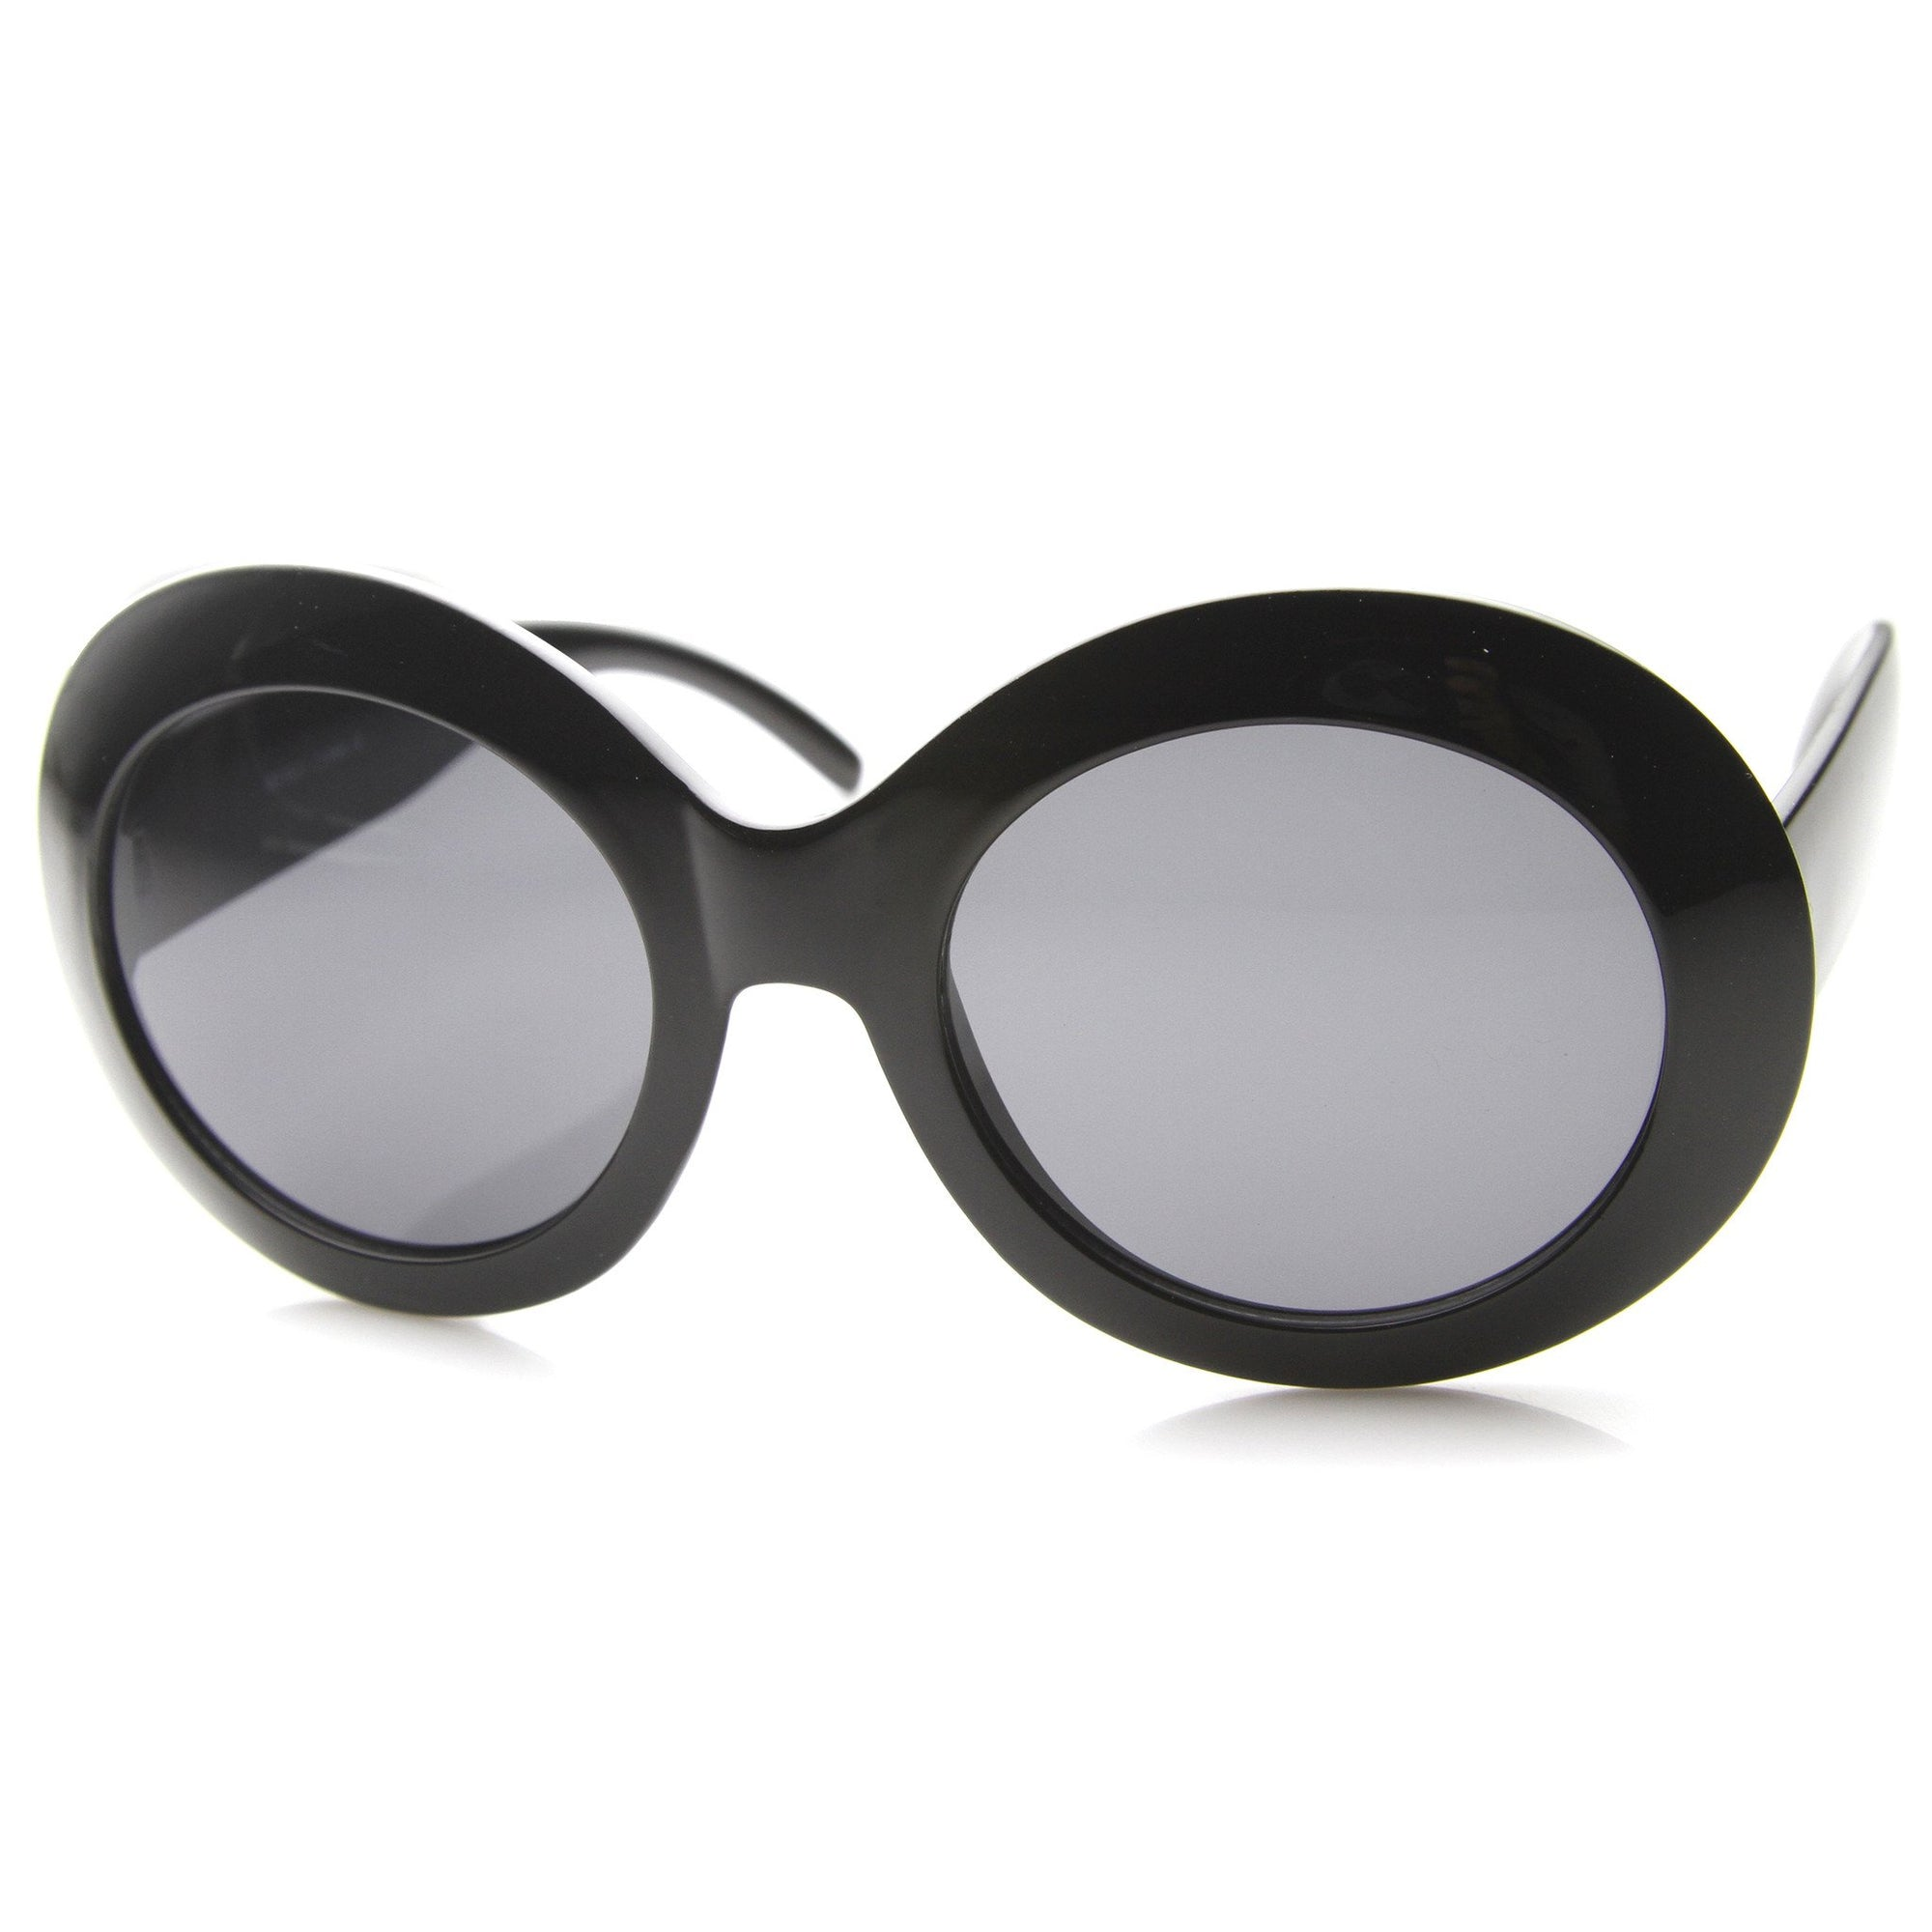 a3572b7e51 ... Retro 1950 s Women s Oval Bold Round Sunglasses 9992 · Black Smoke ·  Black Smoke